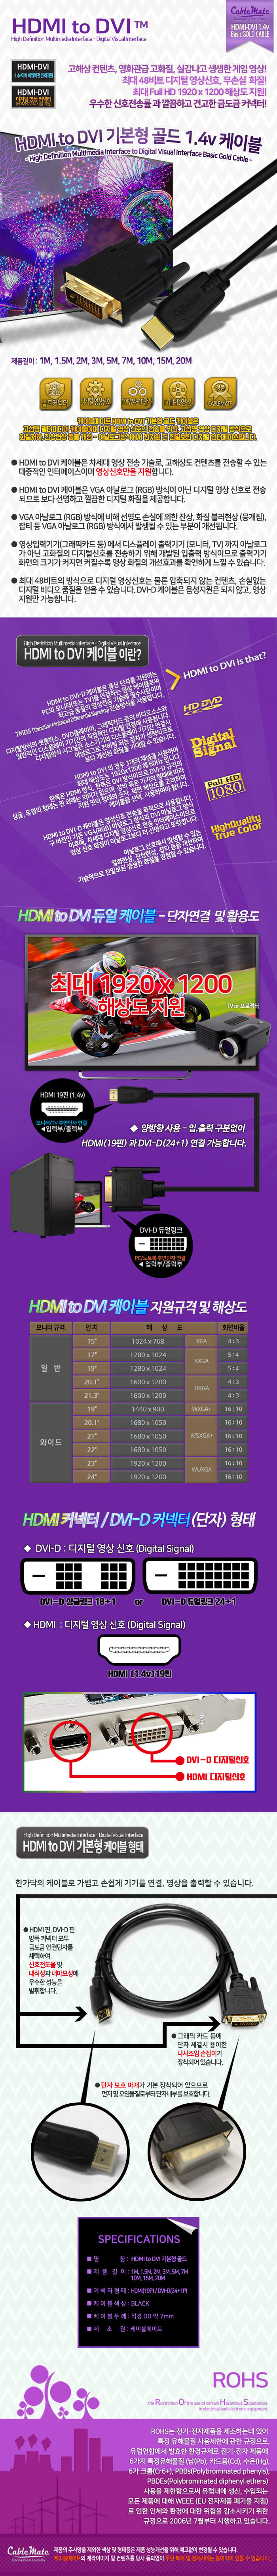 CABLEMATE  HDMI to DVI 기본형 골드 1.4v 케이블(20m)